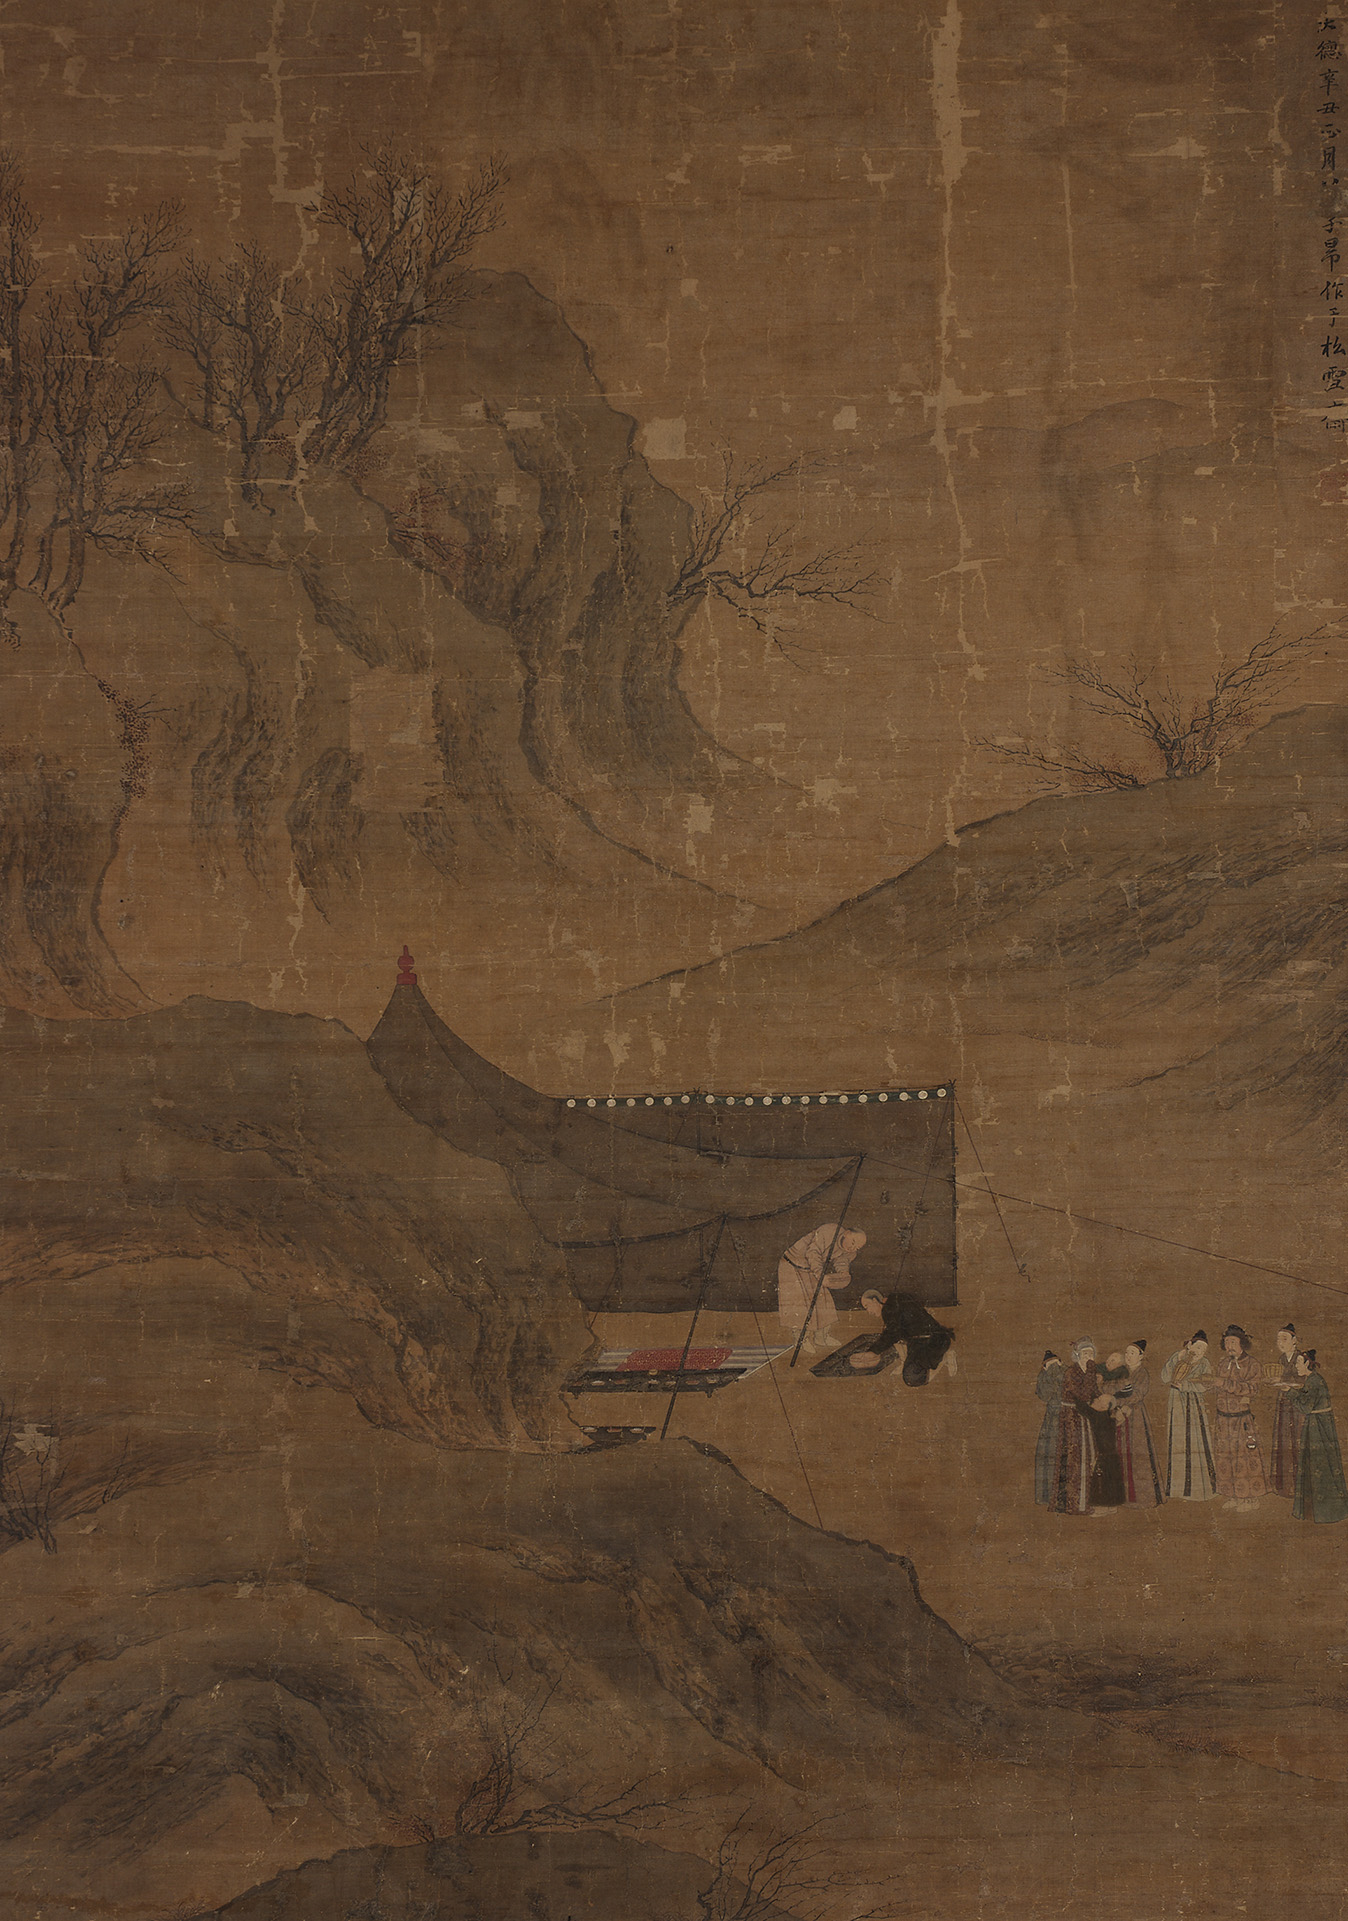 Sheng Mou, Departure of Lady Wenji